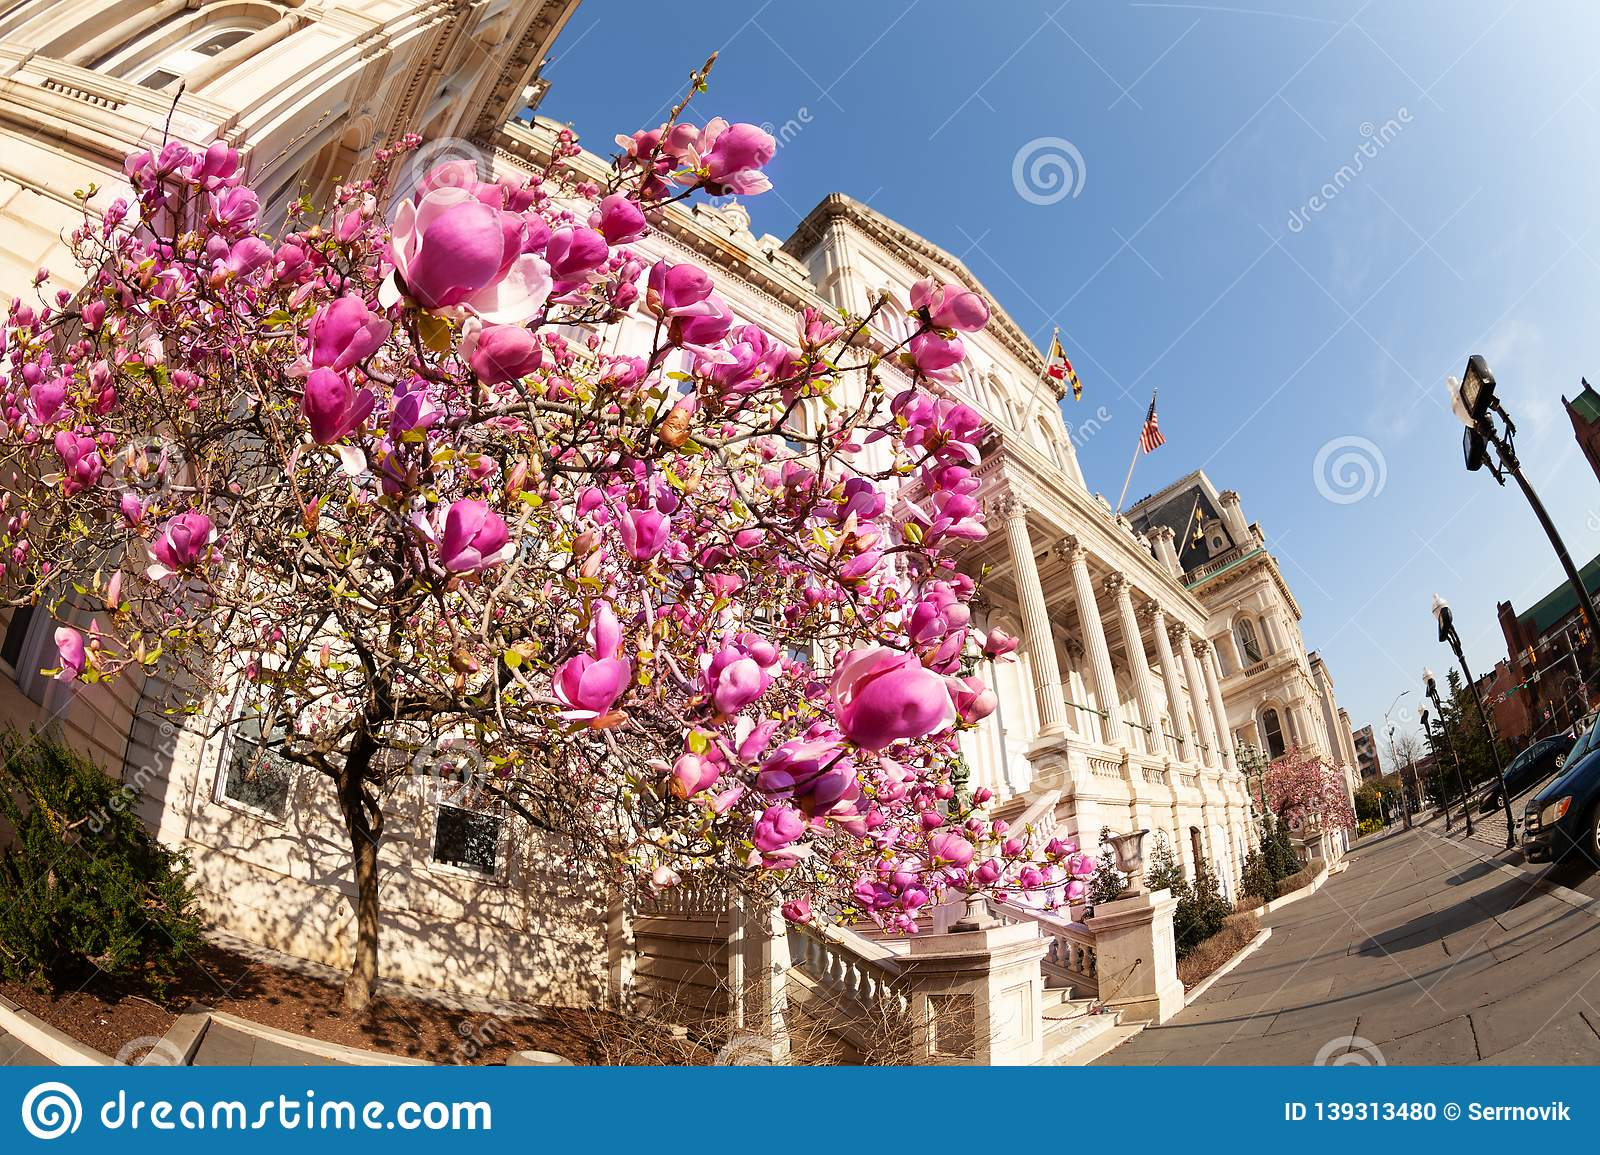 Flowering magnolia in front of Baltimore City Hall